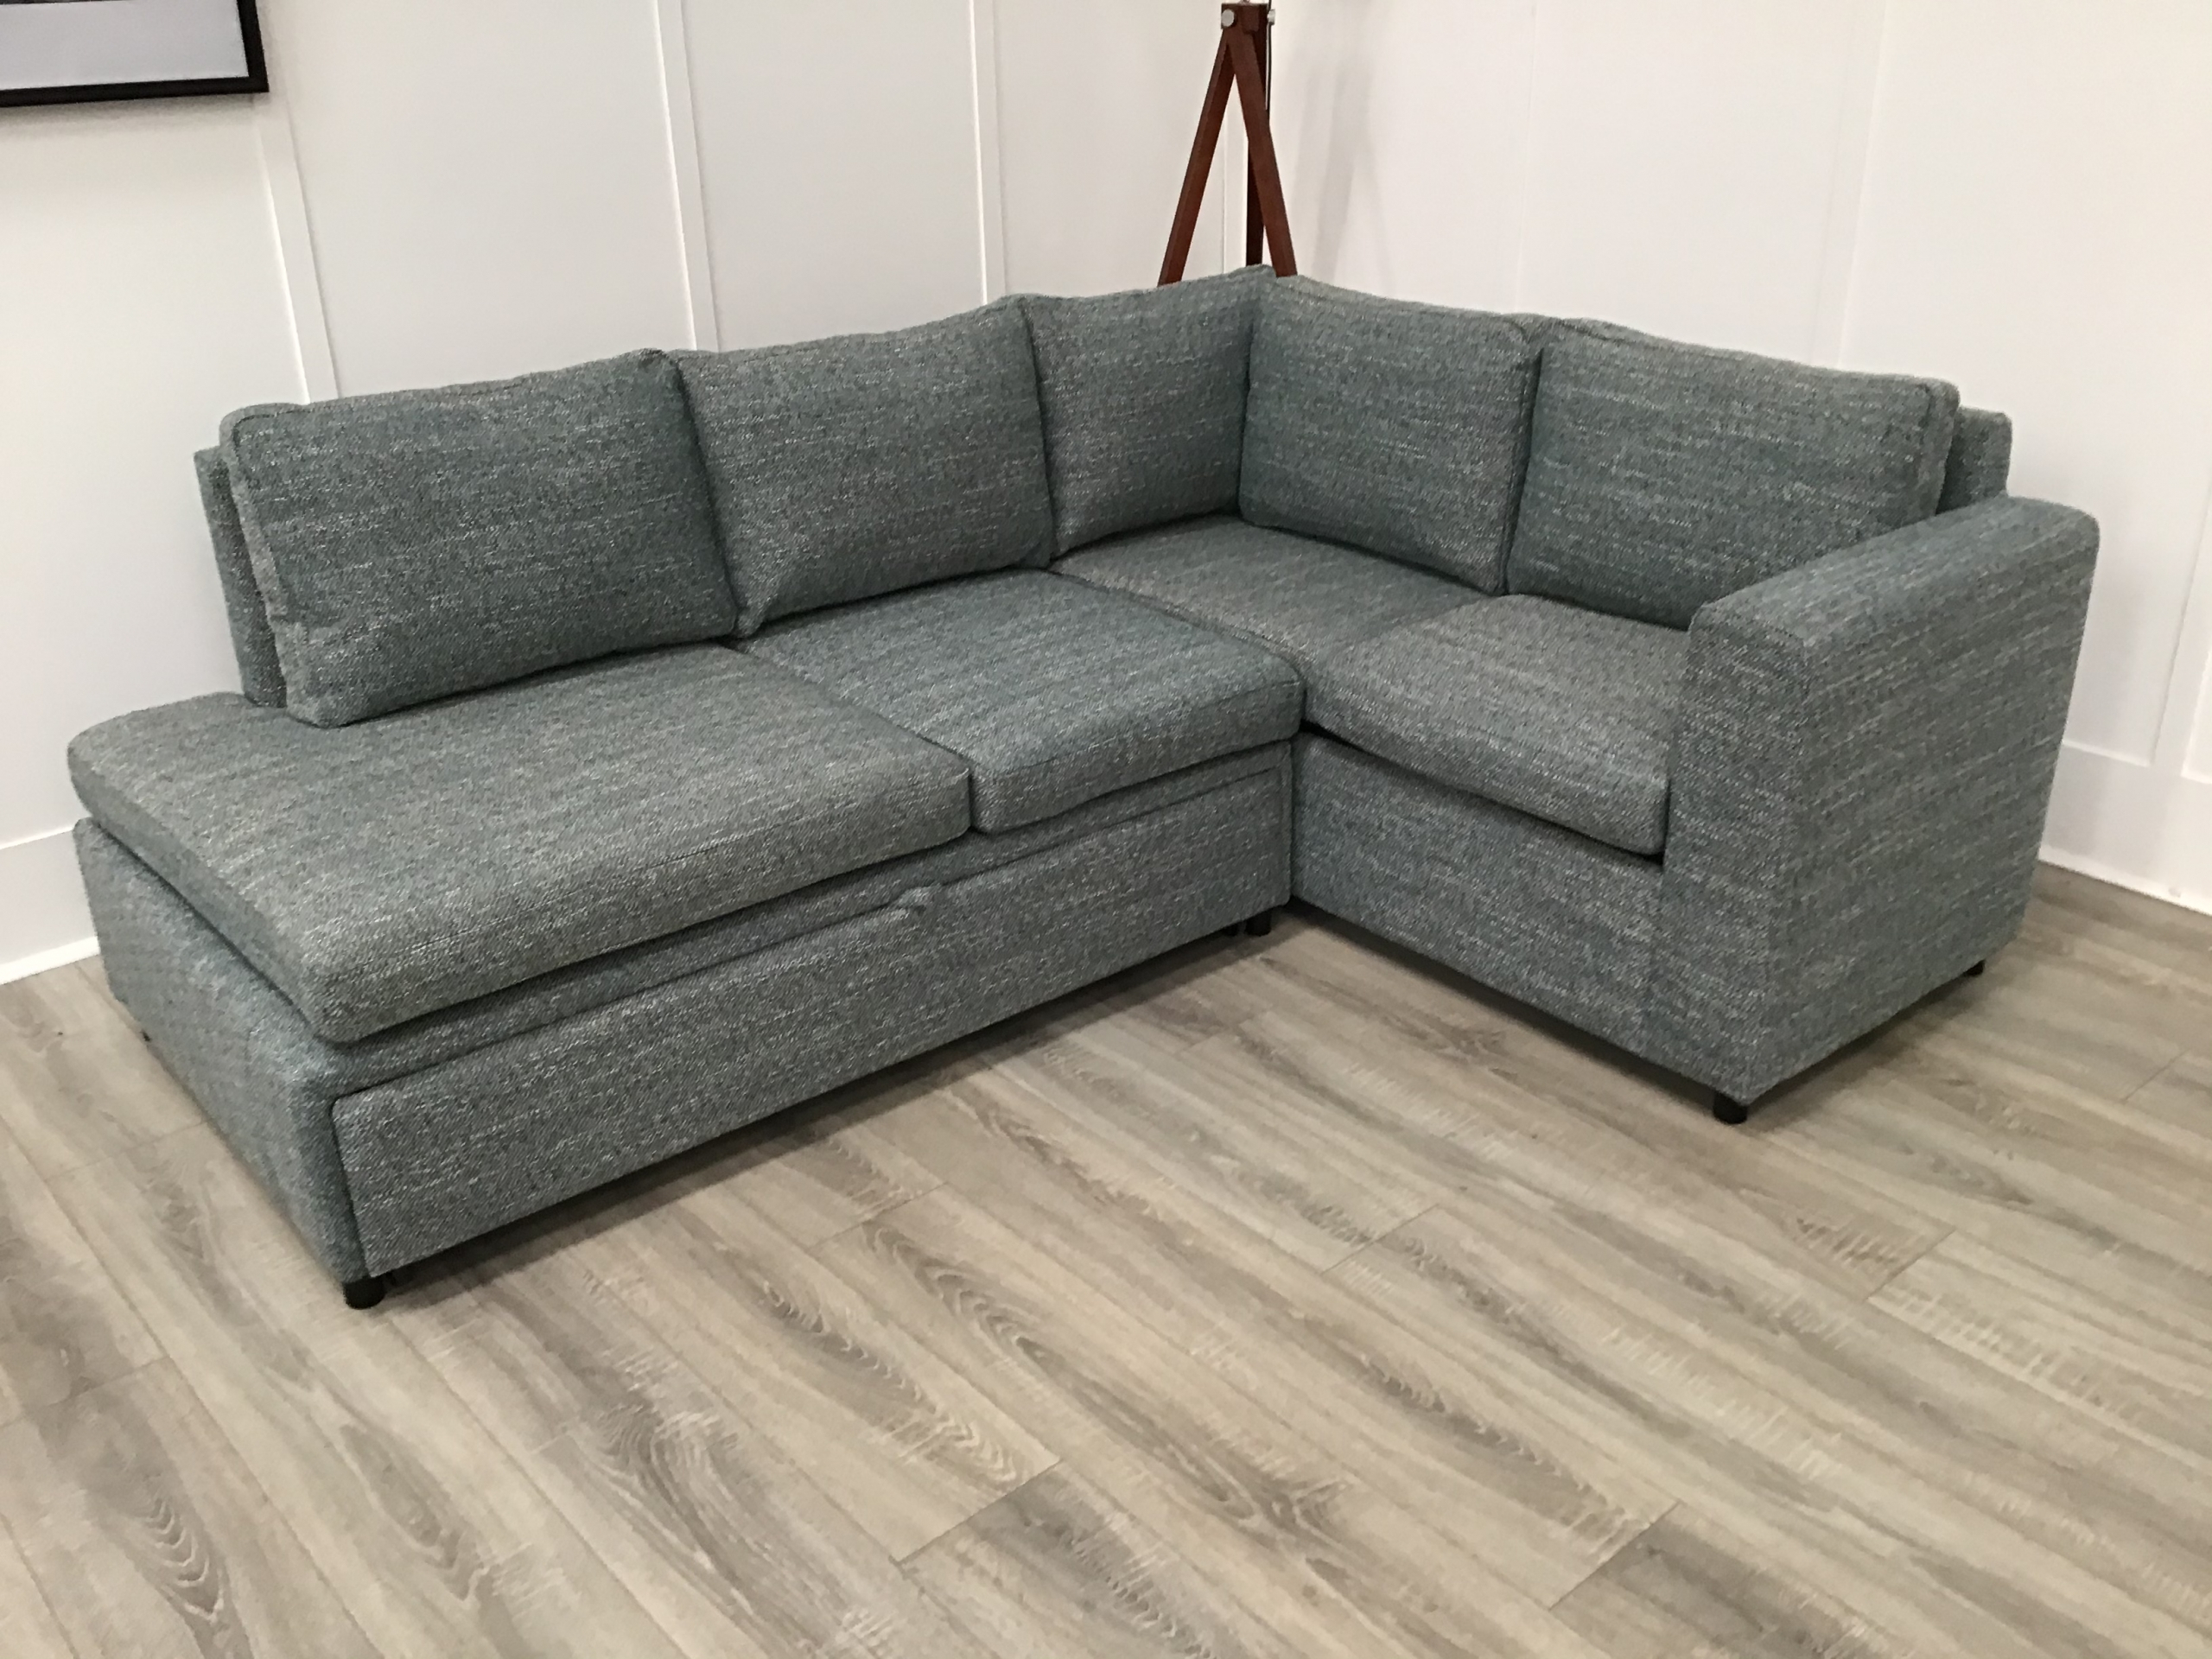 Central Corner Sofa Bed With Storage In Green Fabric For Hartford Storage Sectional Futon Sofas (View 4 of 15)